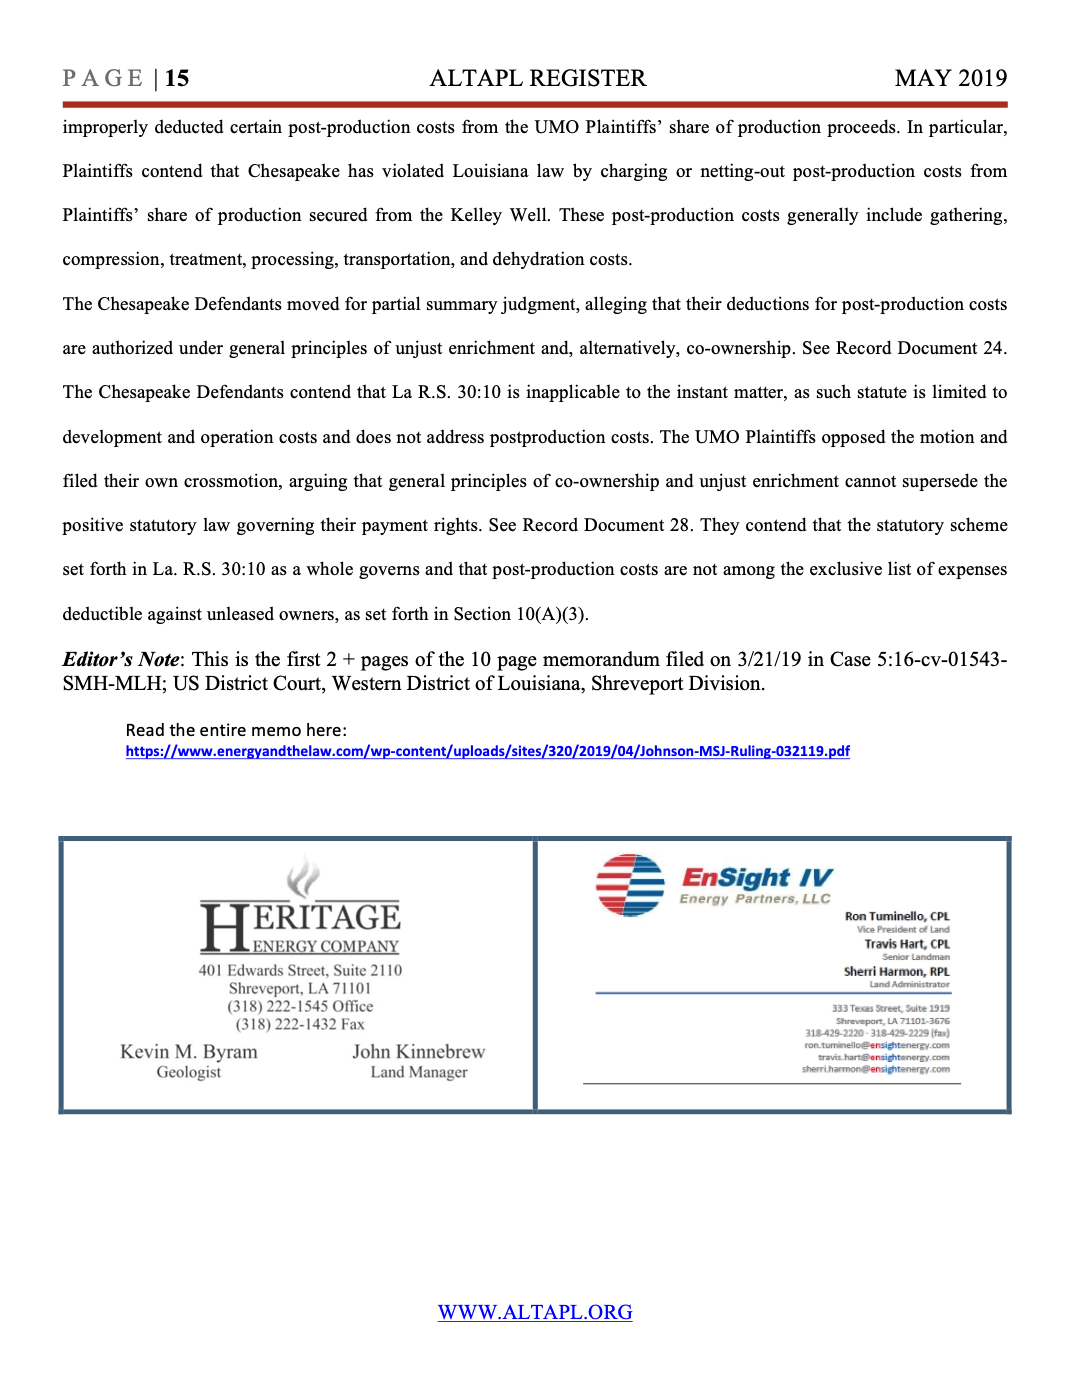 ALTAPL Register May 2019 Page 15.jpg